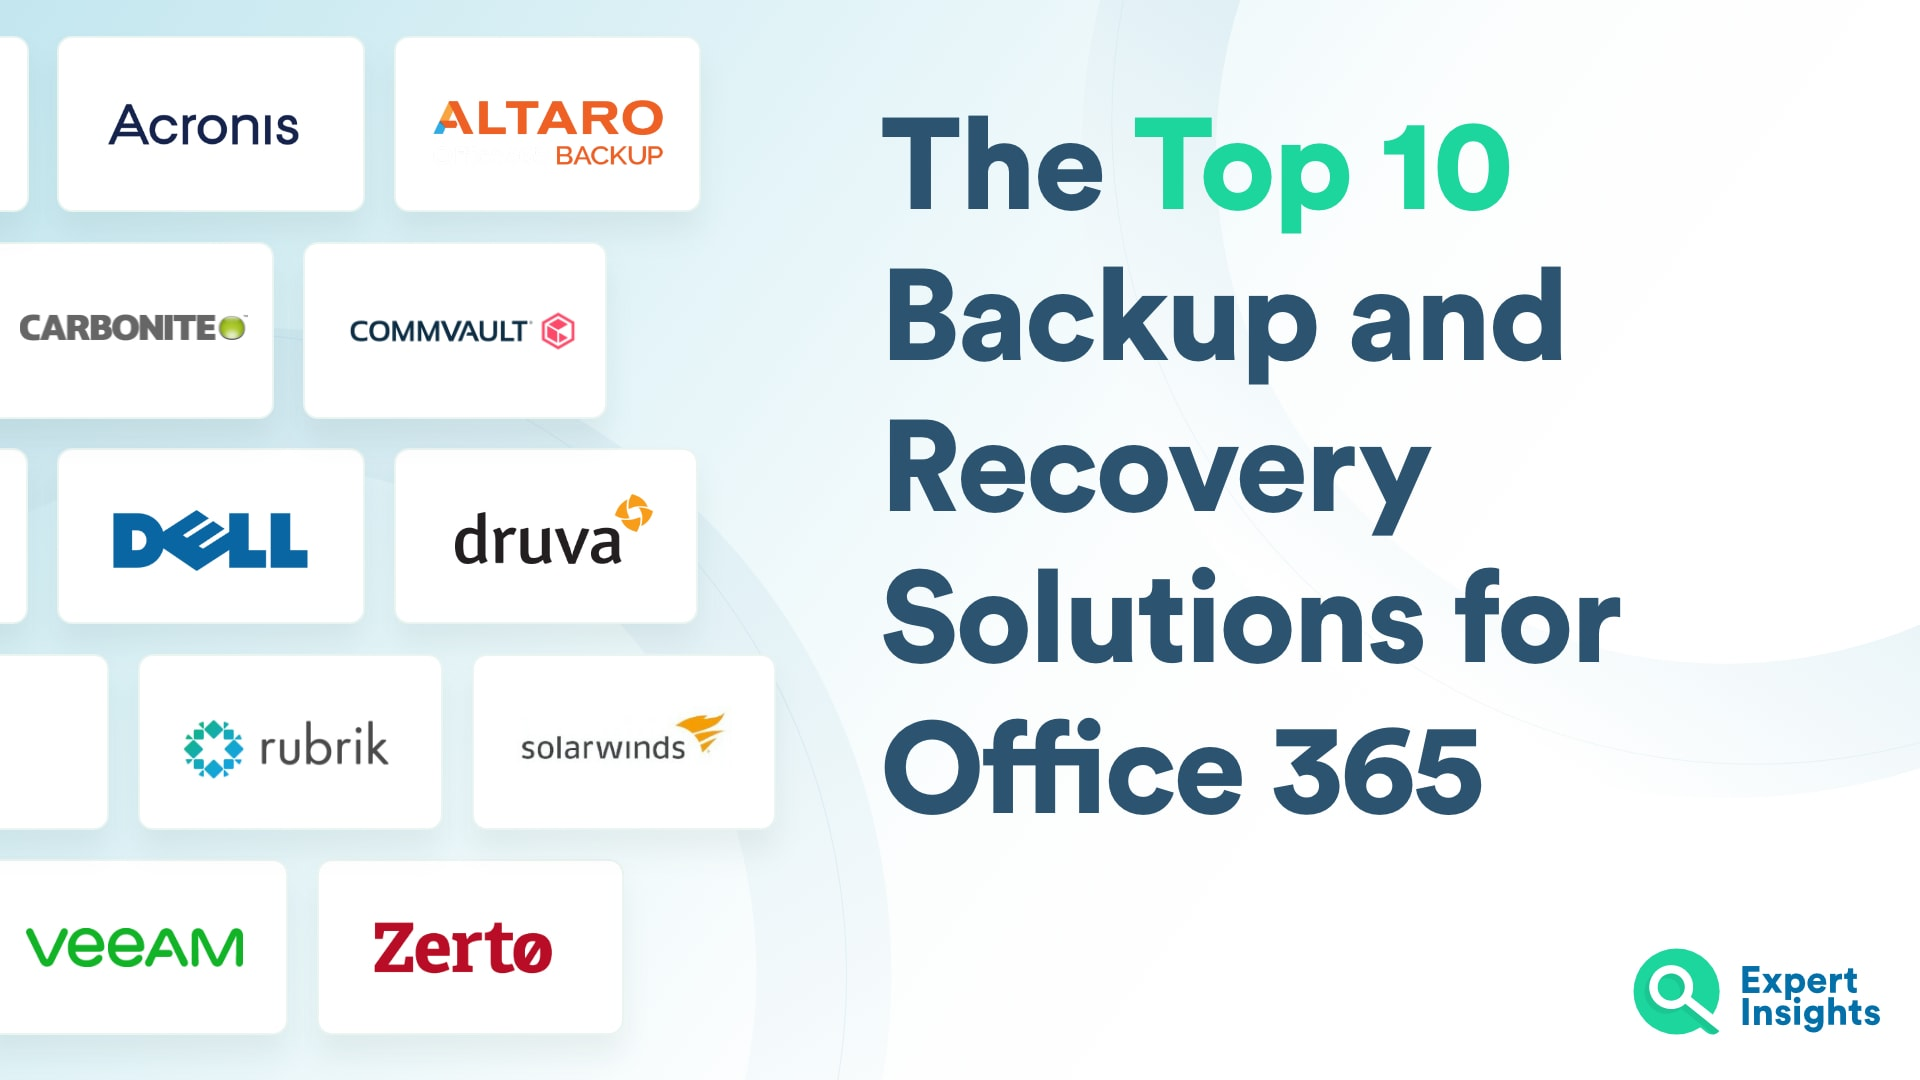 The Top Backup And Recovery Solutions For Office 365 - Expert Insights